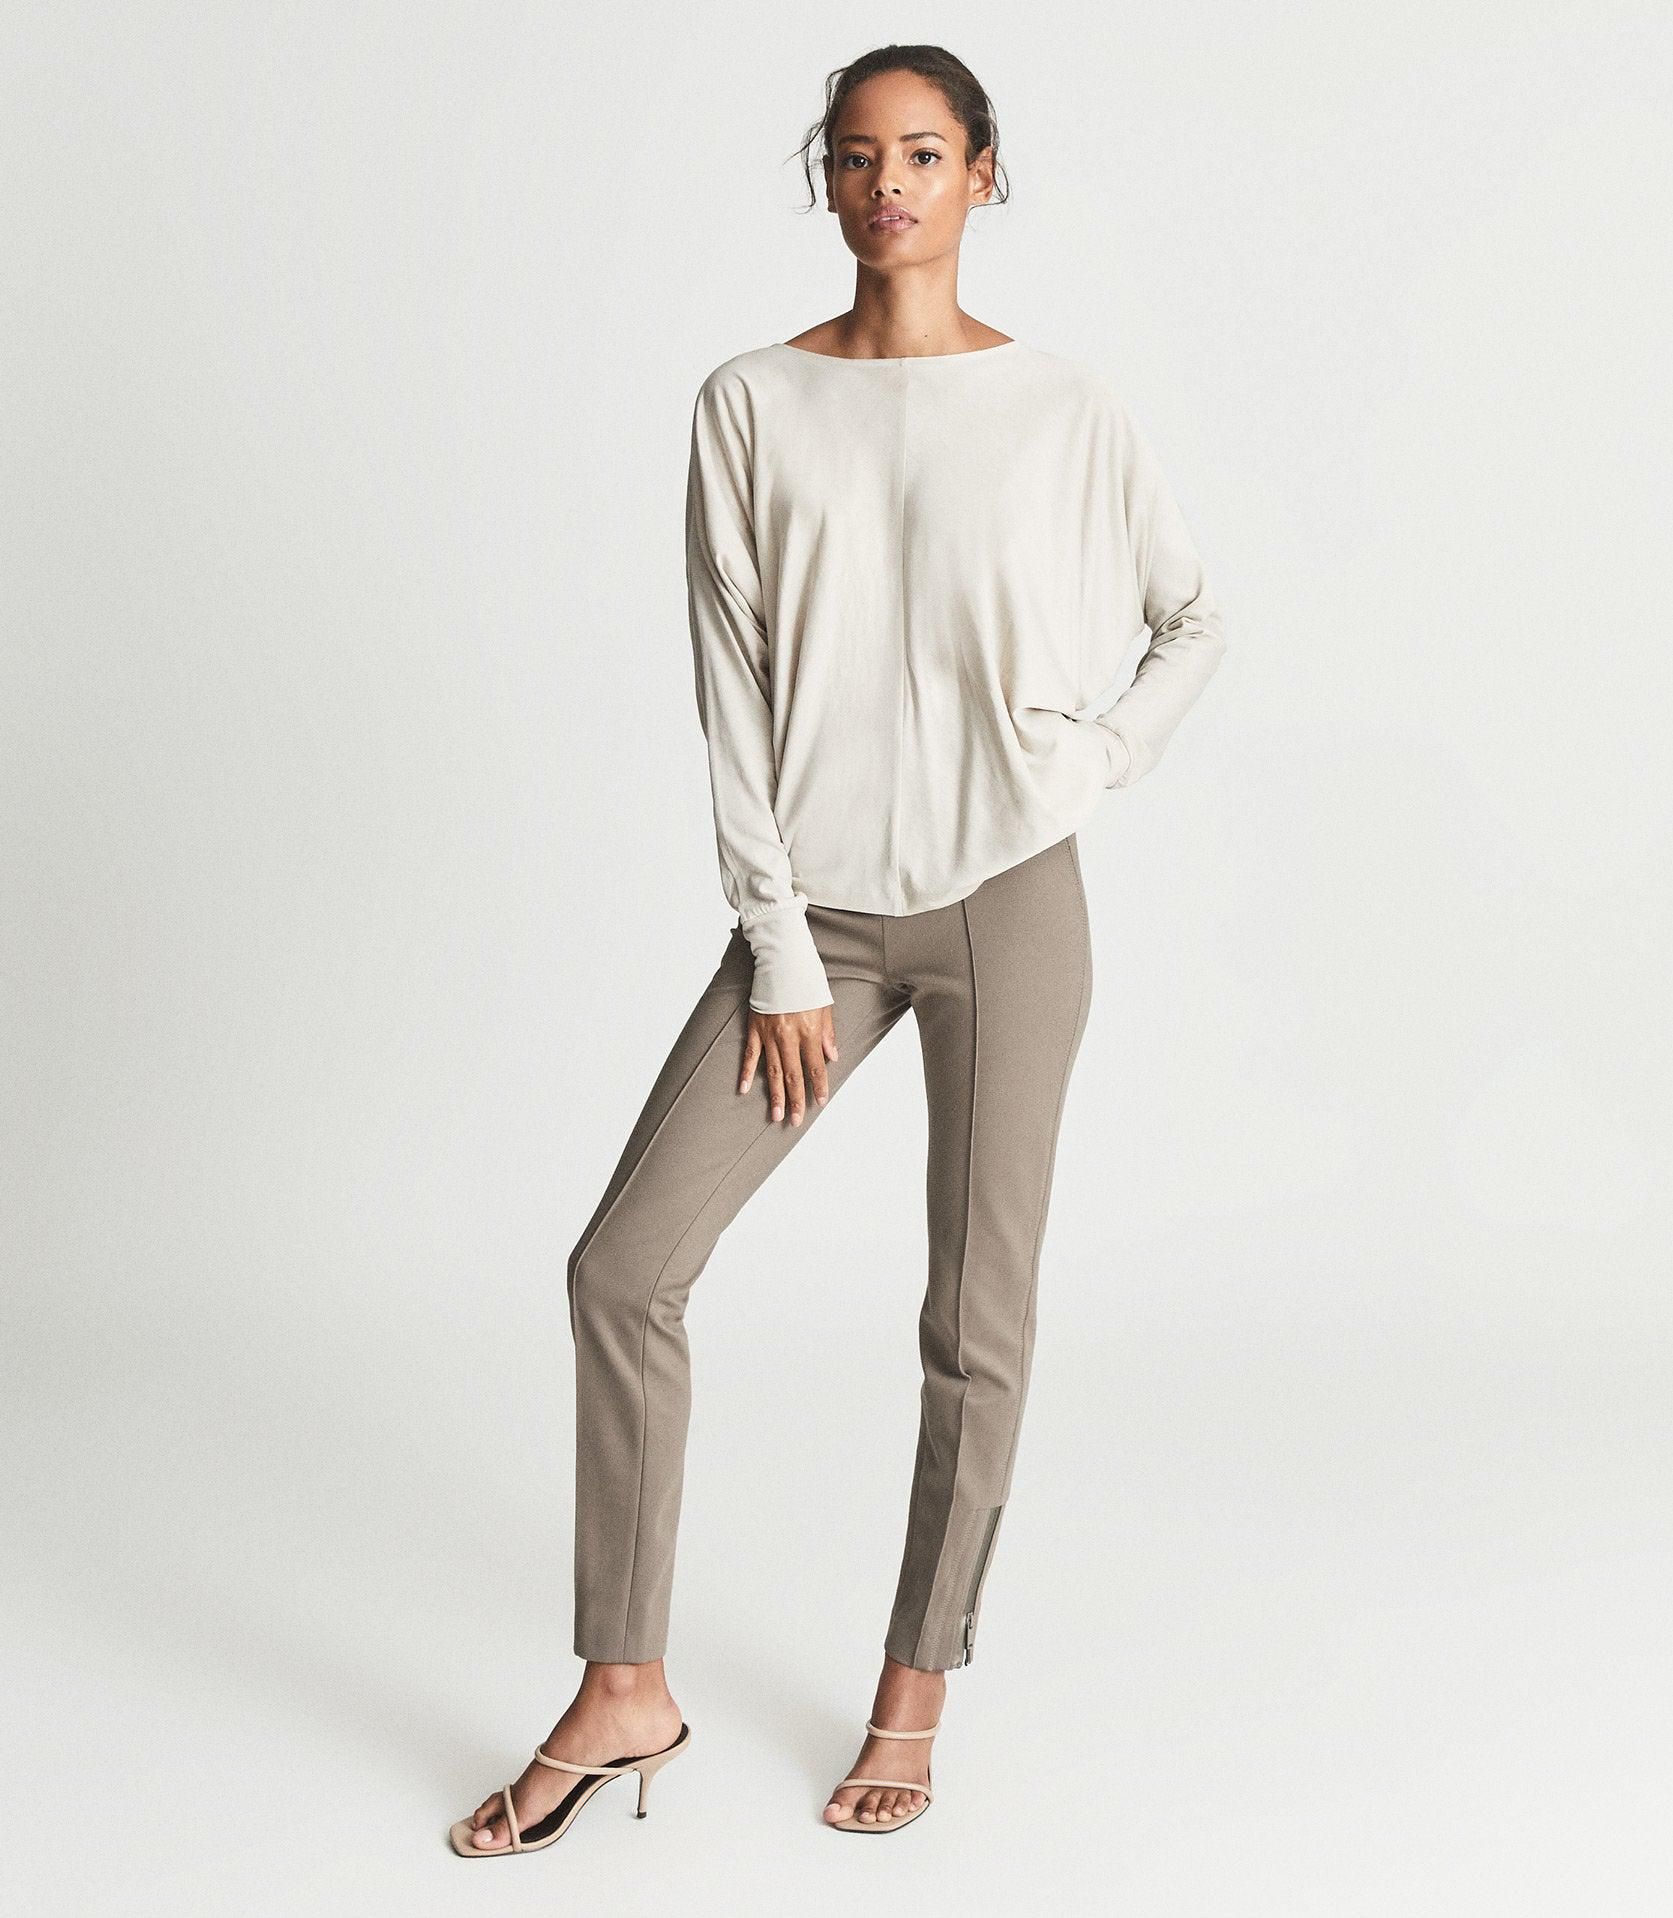 ISLA - PONTE TROUSERS WITH ZIP DETAIL